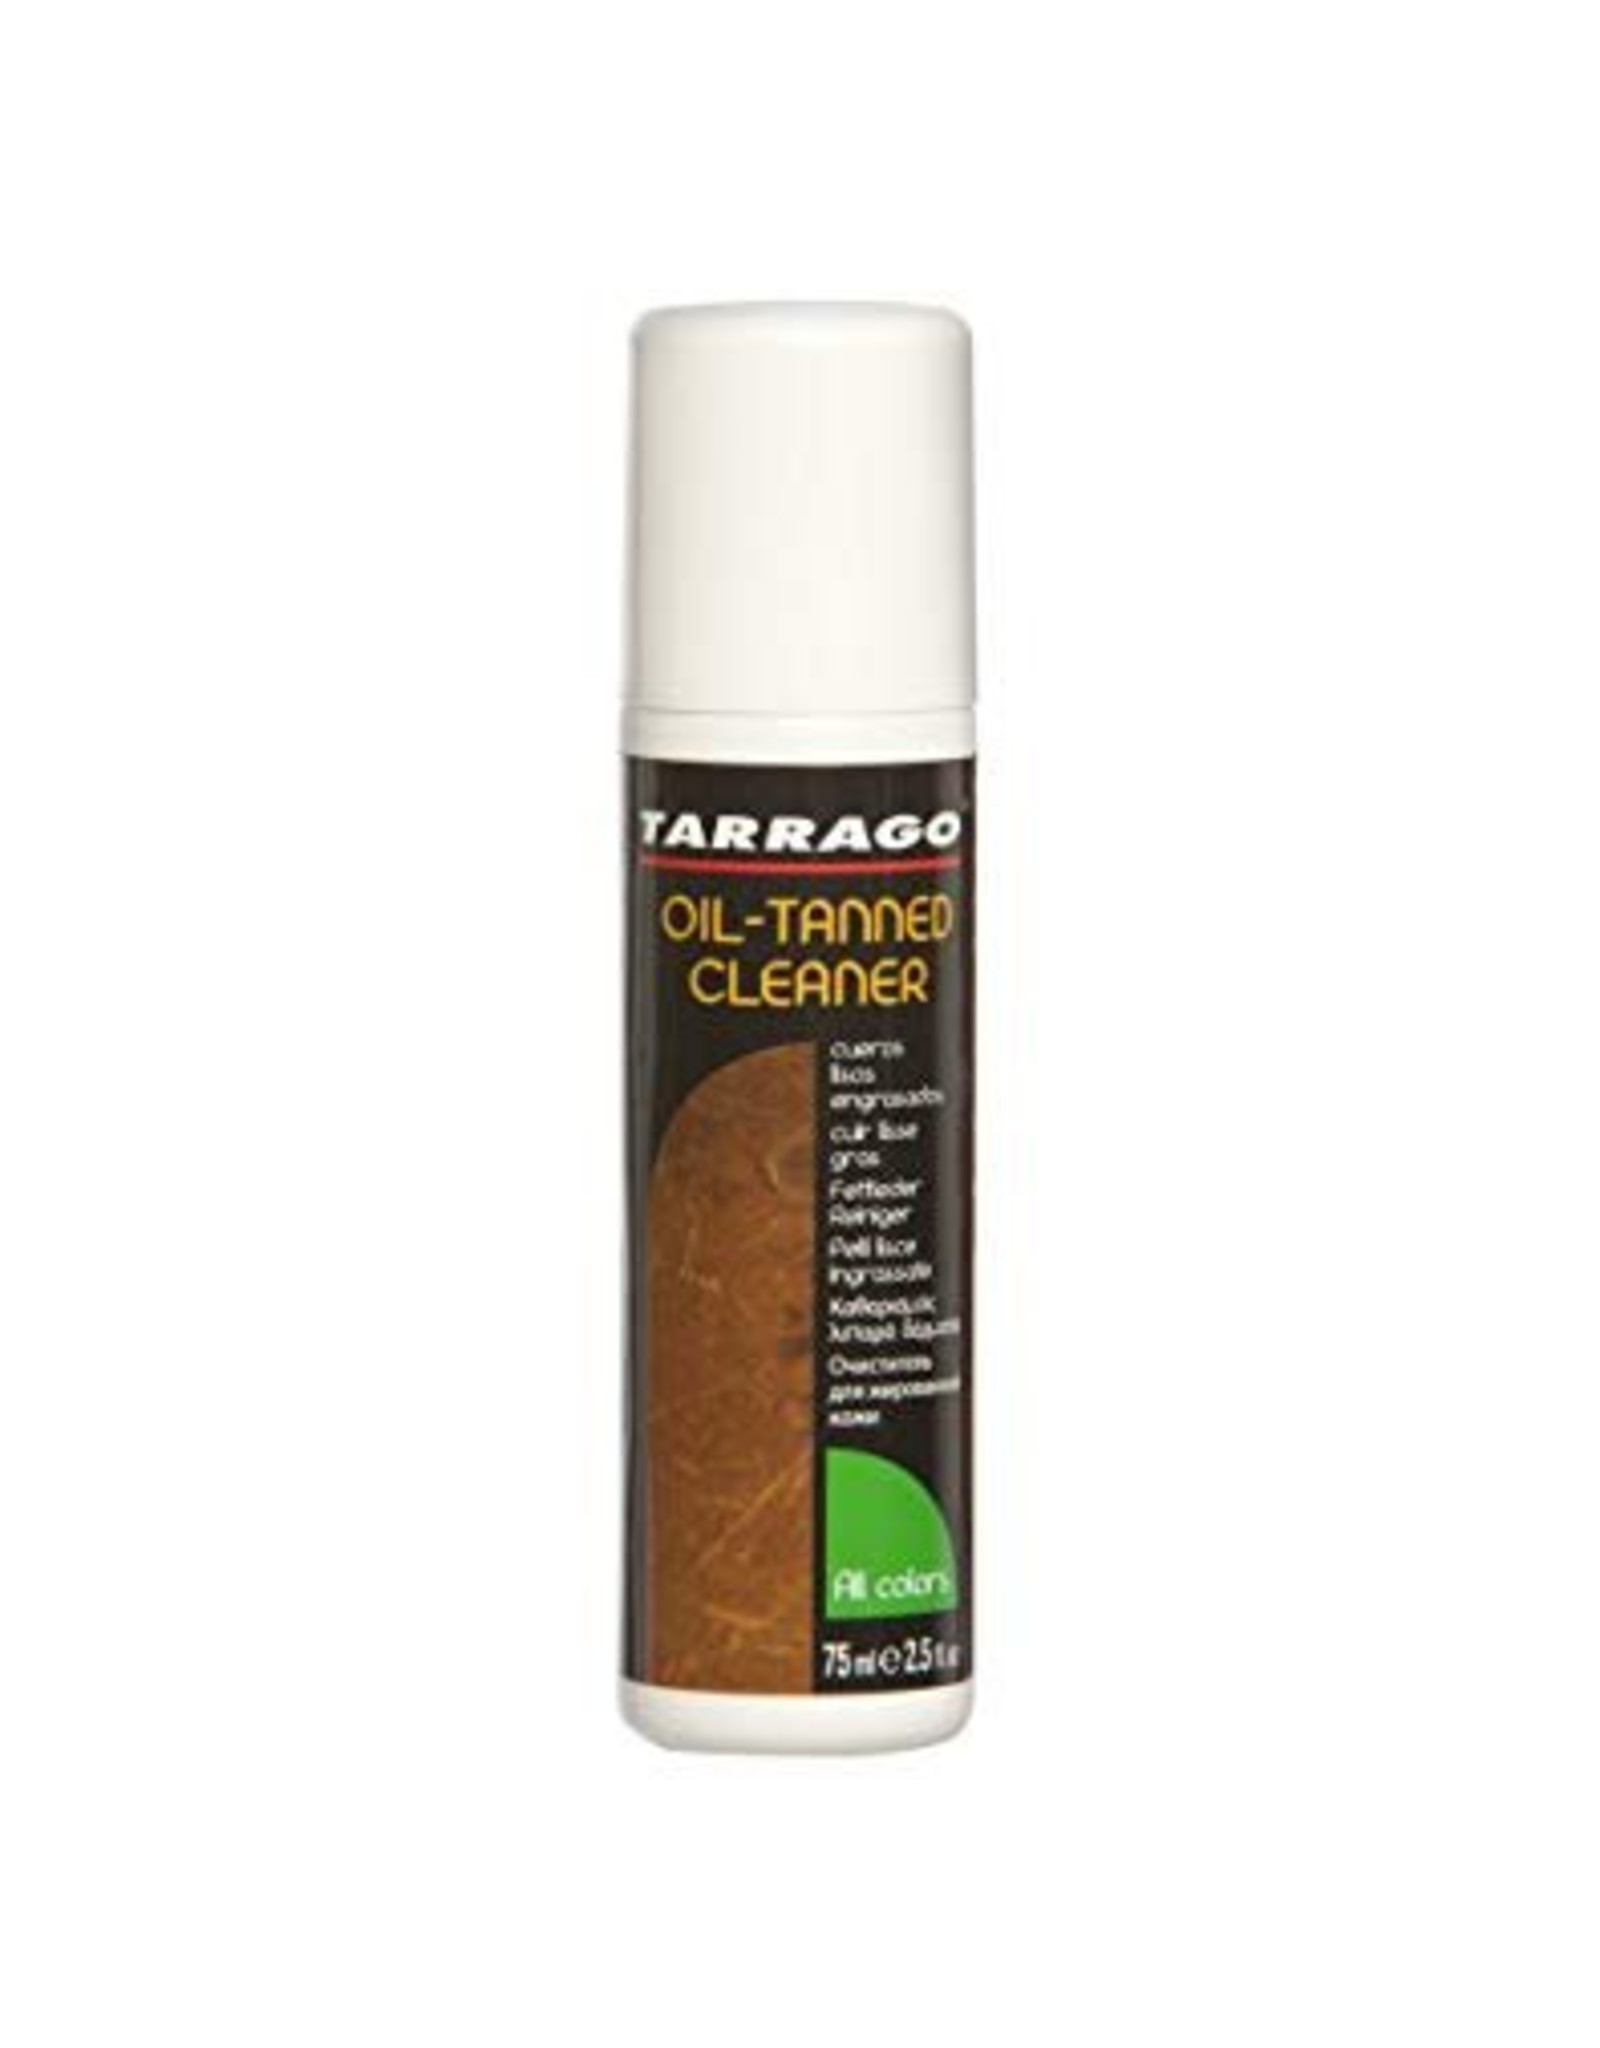 Oily leather cleaner - specially formulated for oily leather